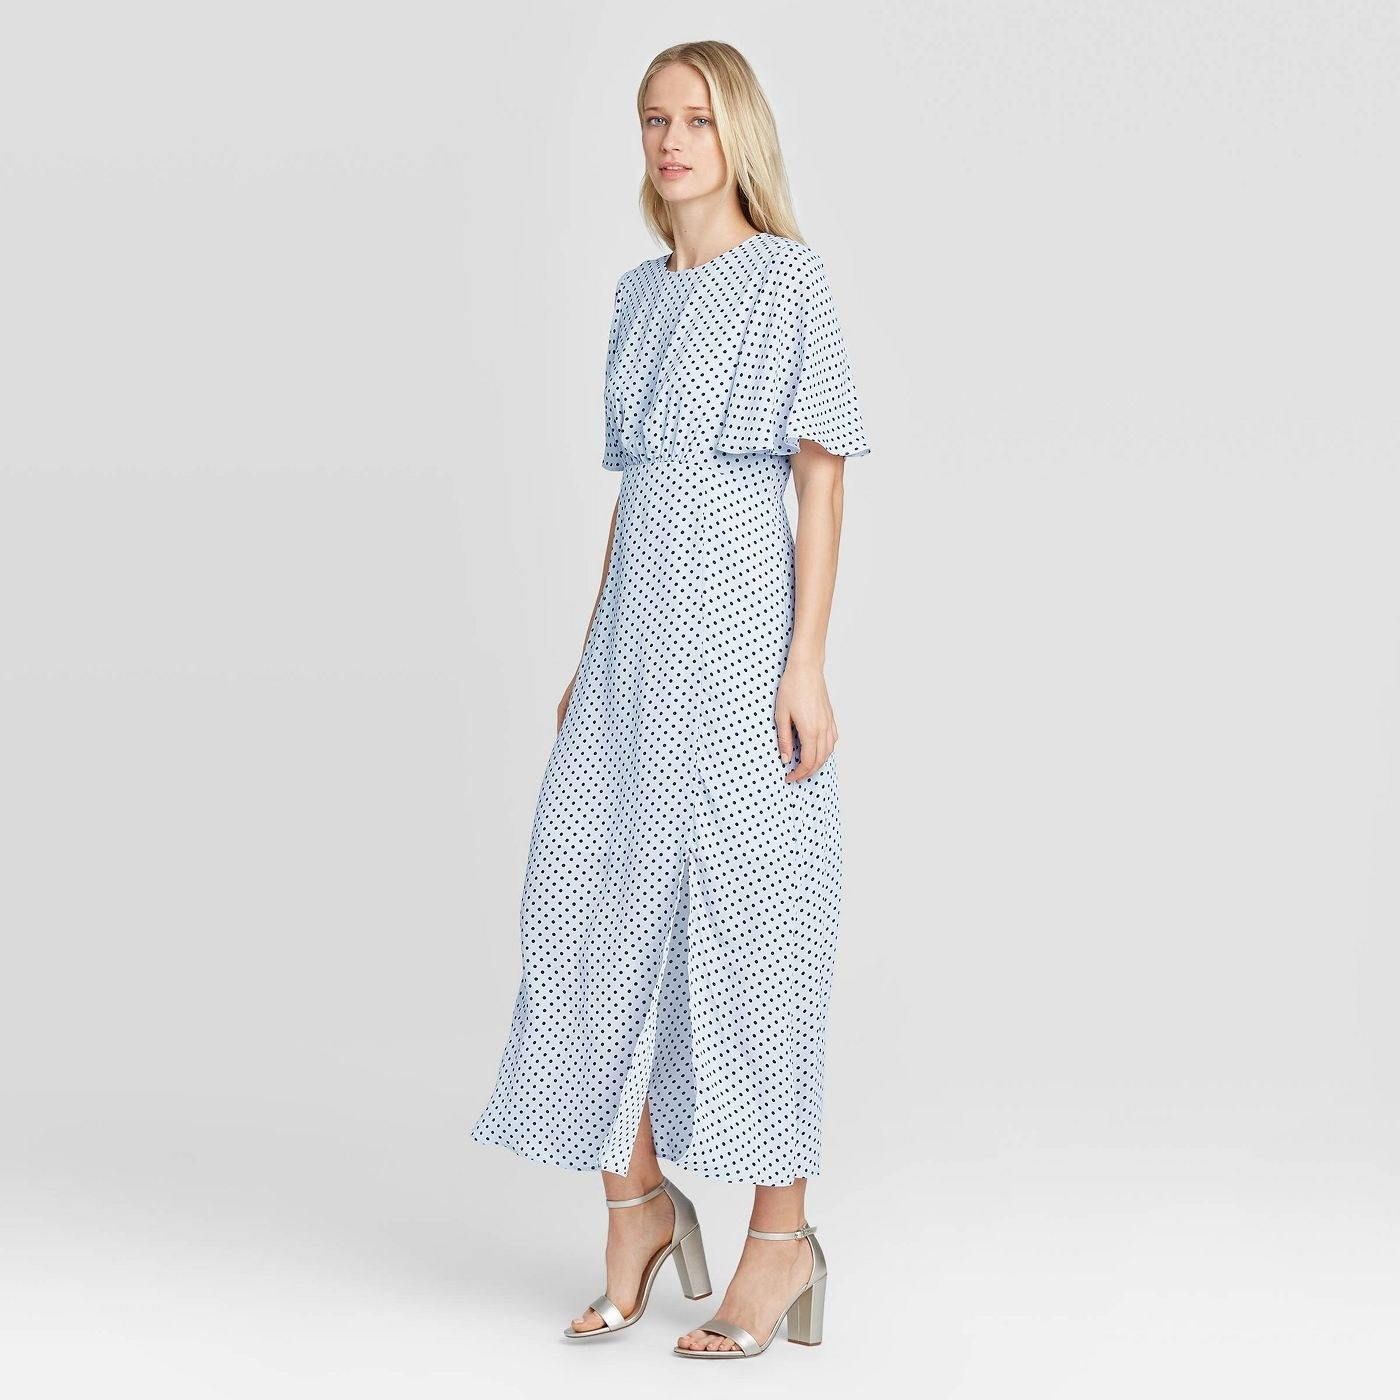 A white blue polka-dotted dress with a high neckline, fluttering sleeves, and a cinch above the waist